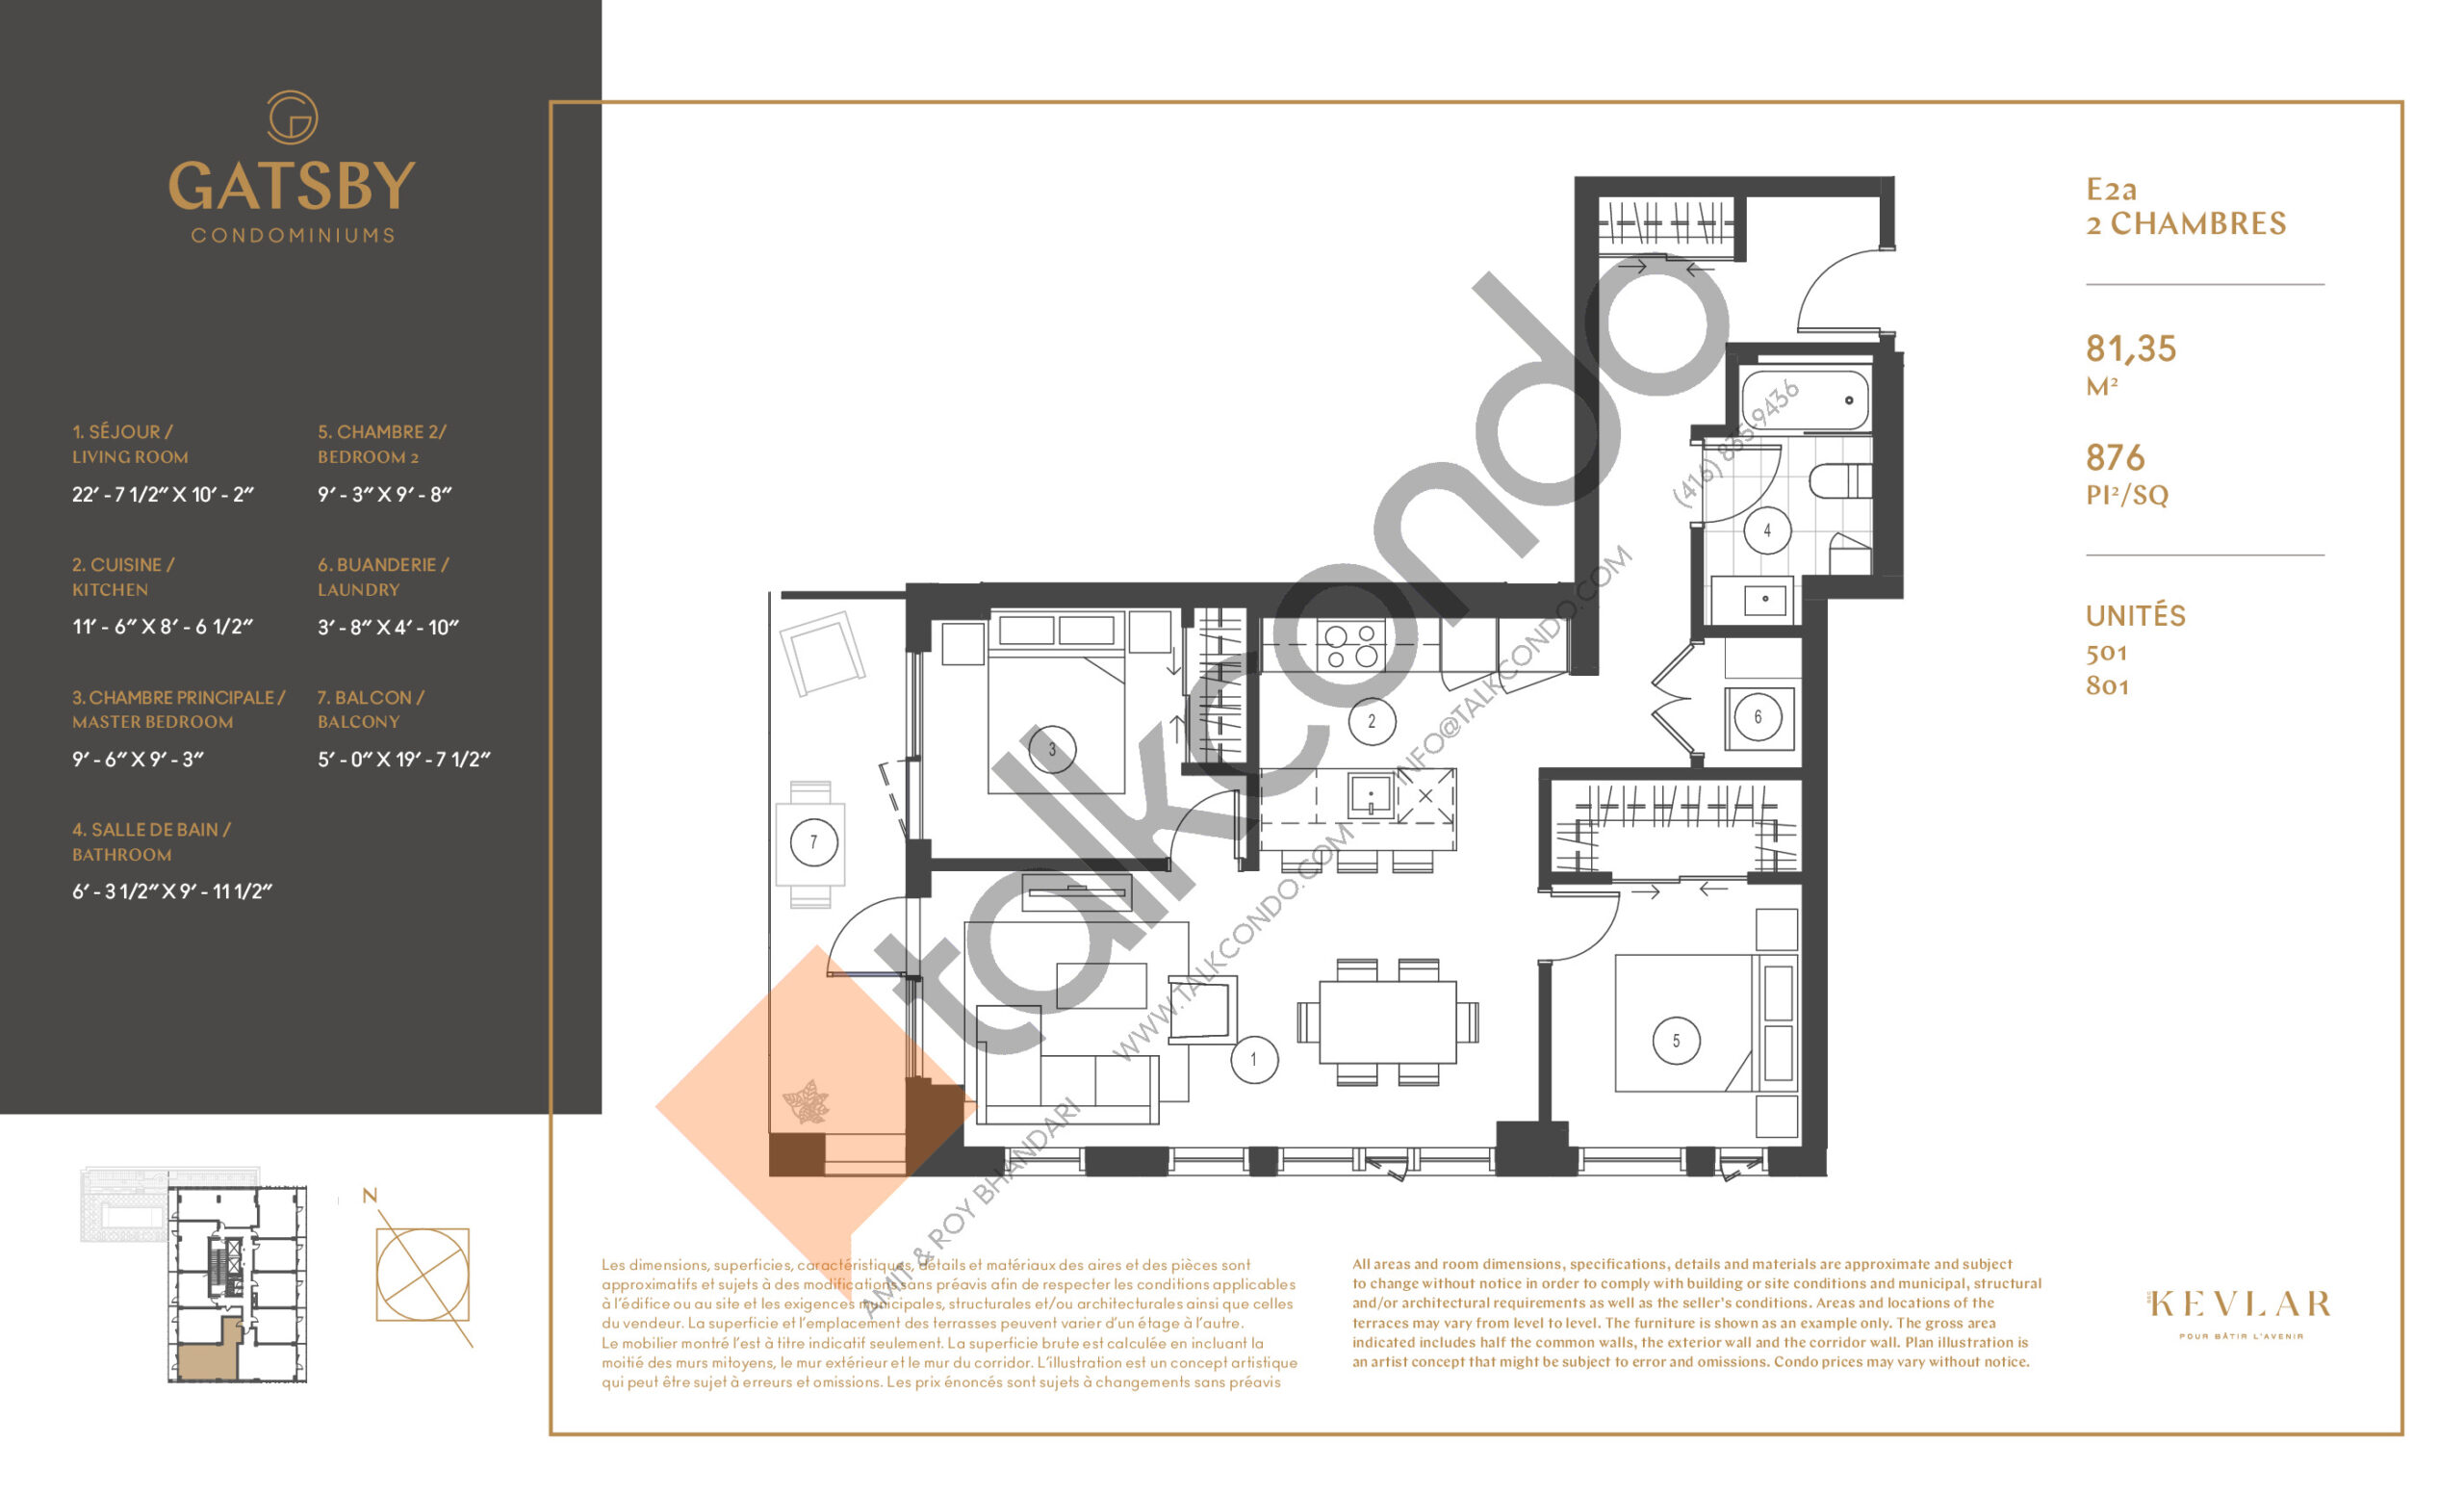 E2a Floor Plan at Gatsby Condos - 876 sq.ft